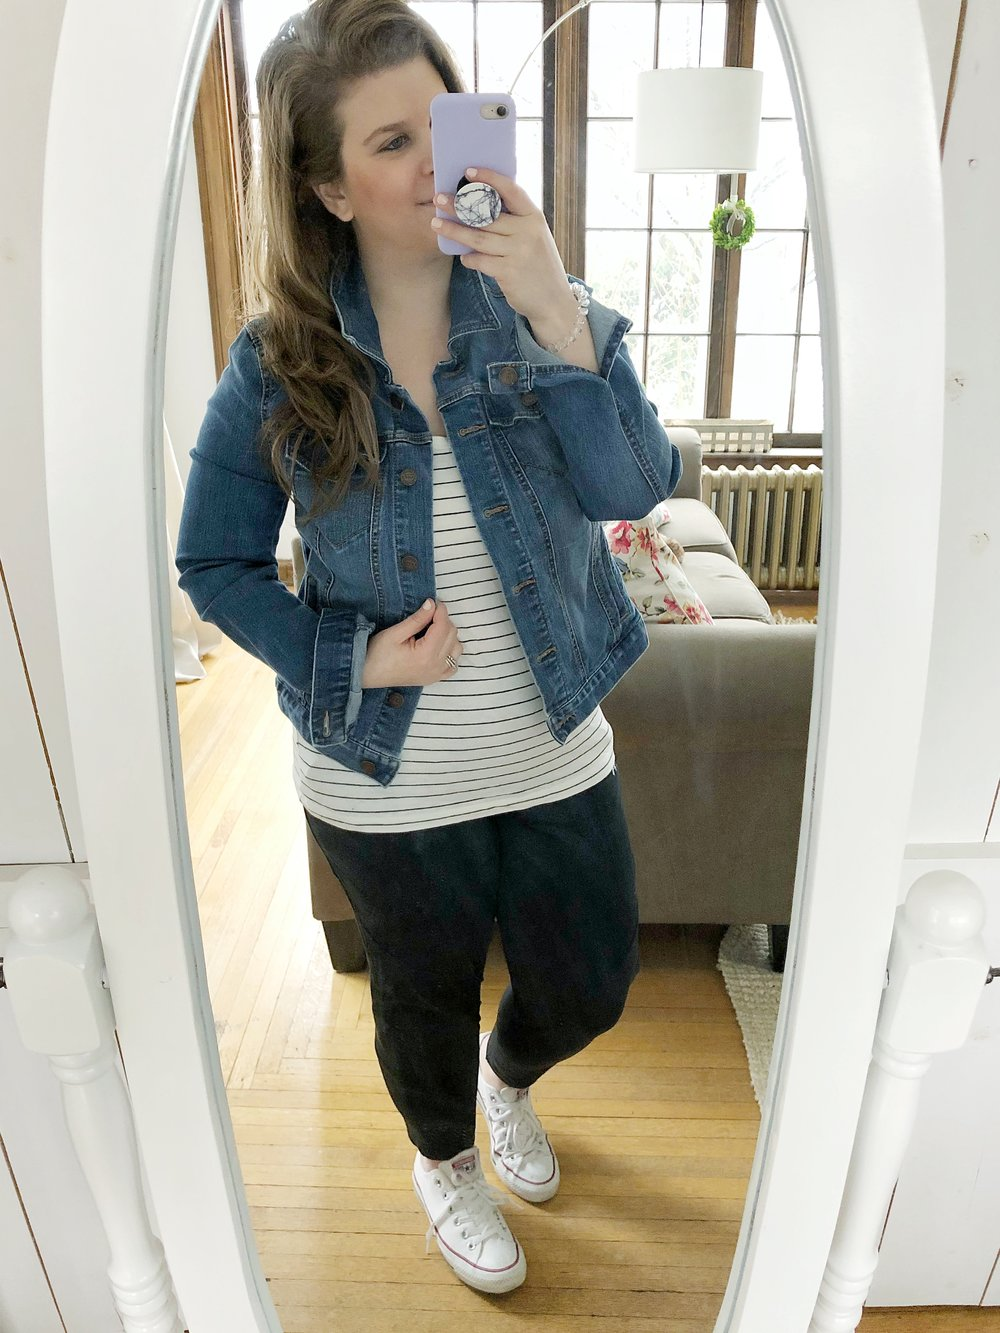 Comfy casual jogger style